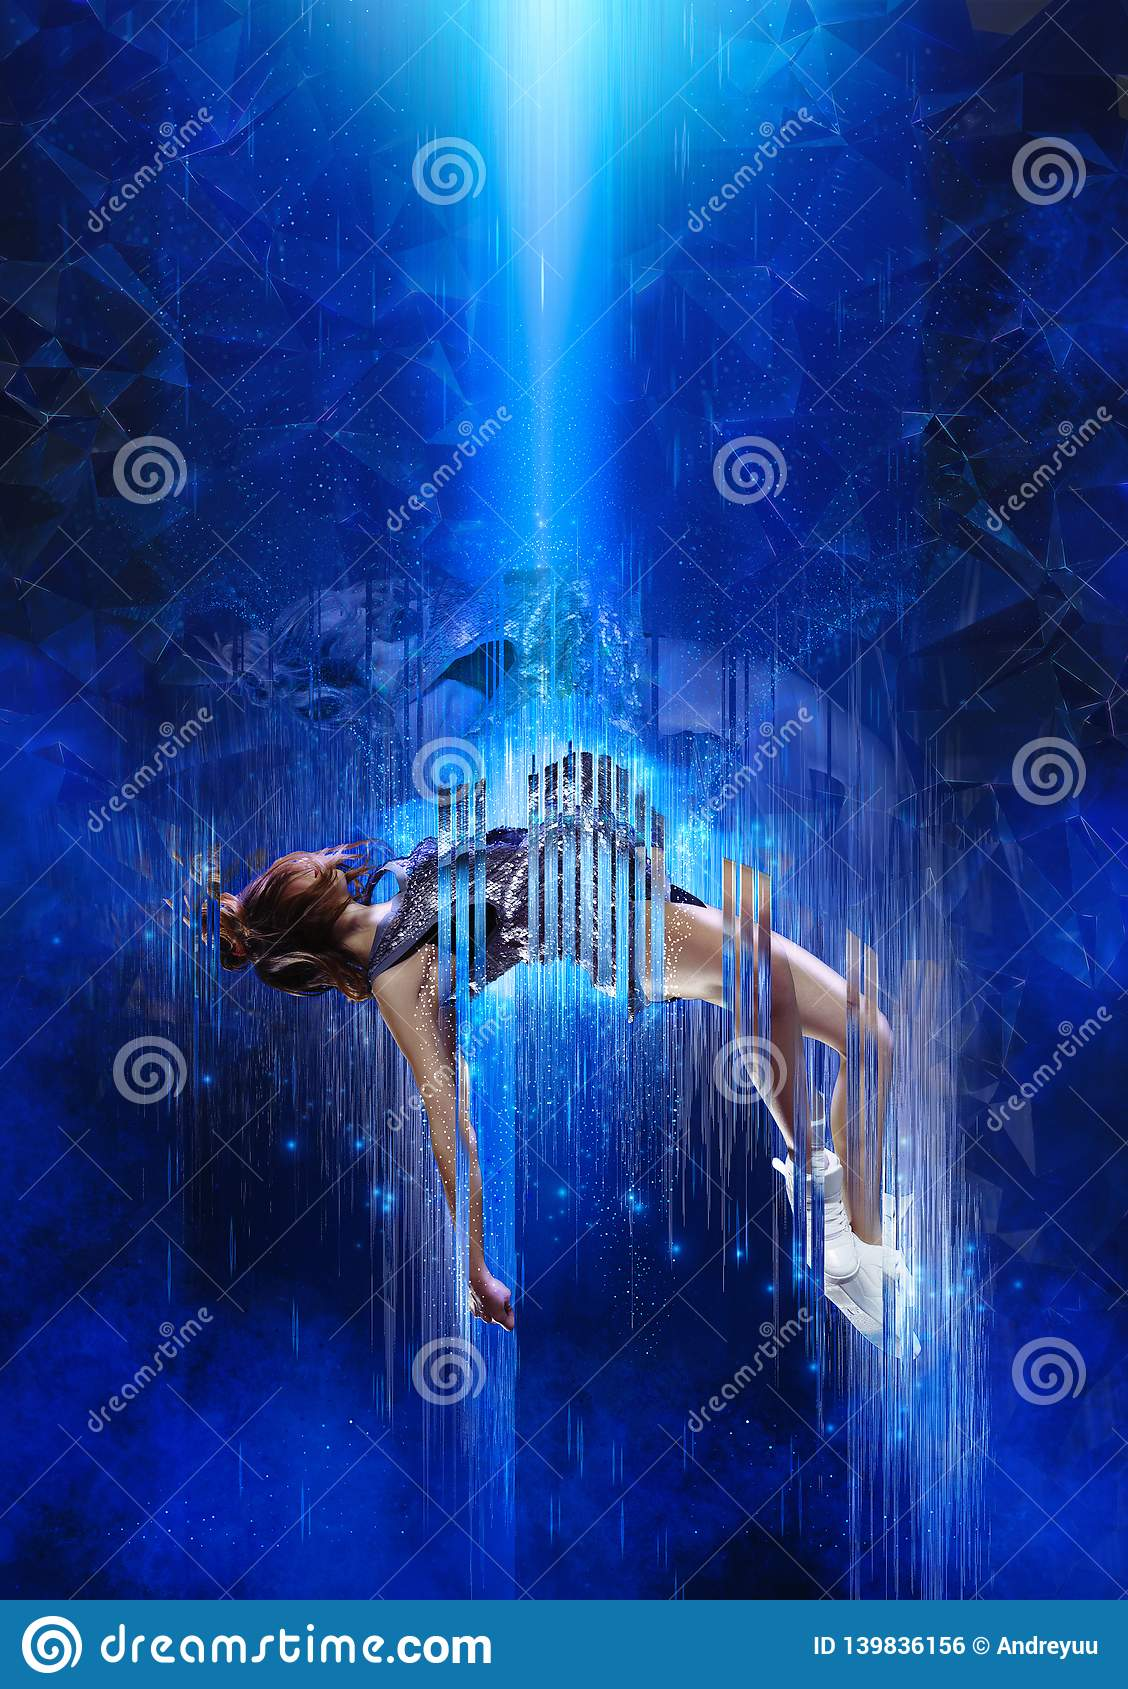 Teleportation to another world or dimension, scientific experiment